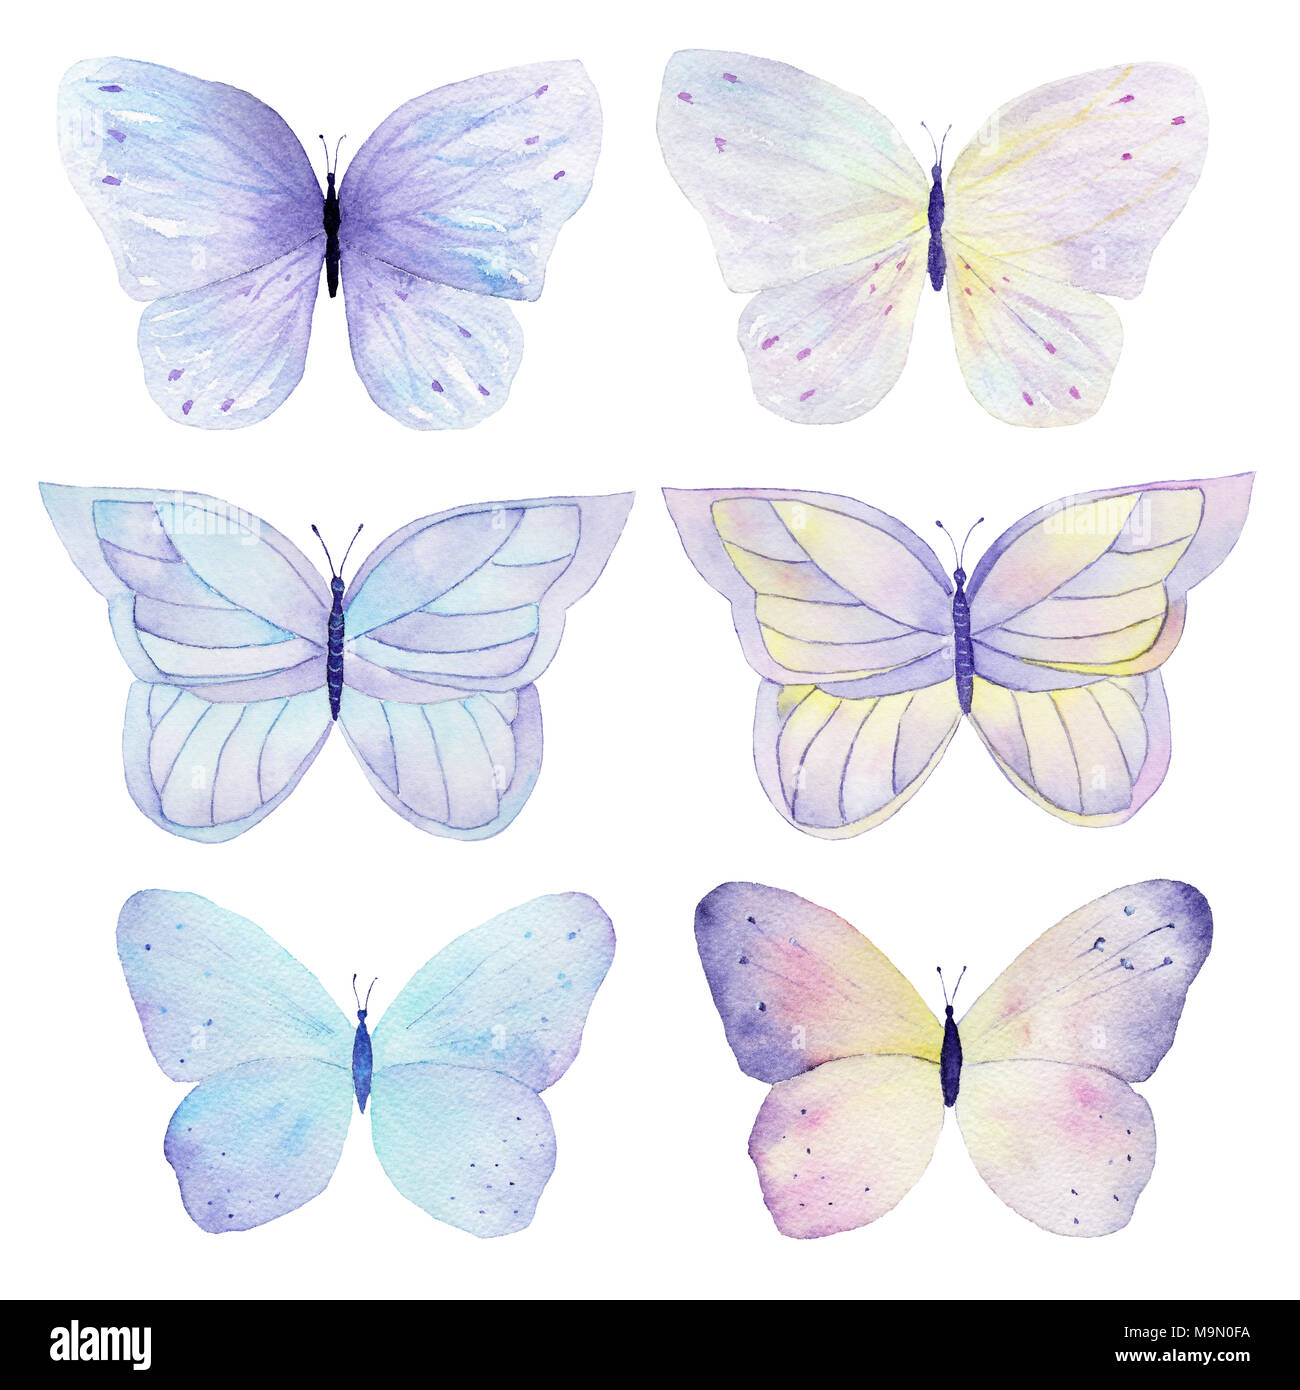 butterfly hand painted watercolor collection on white background